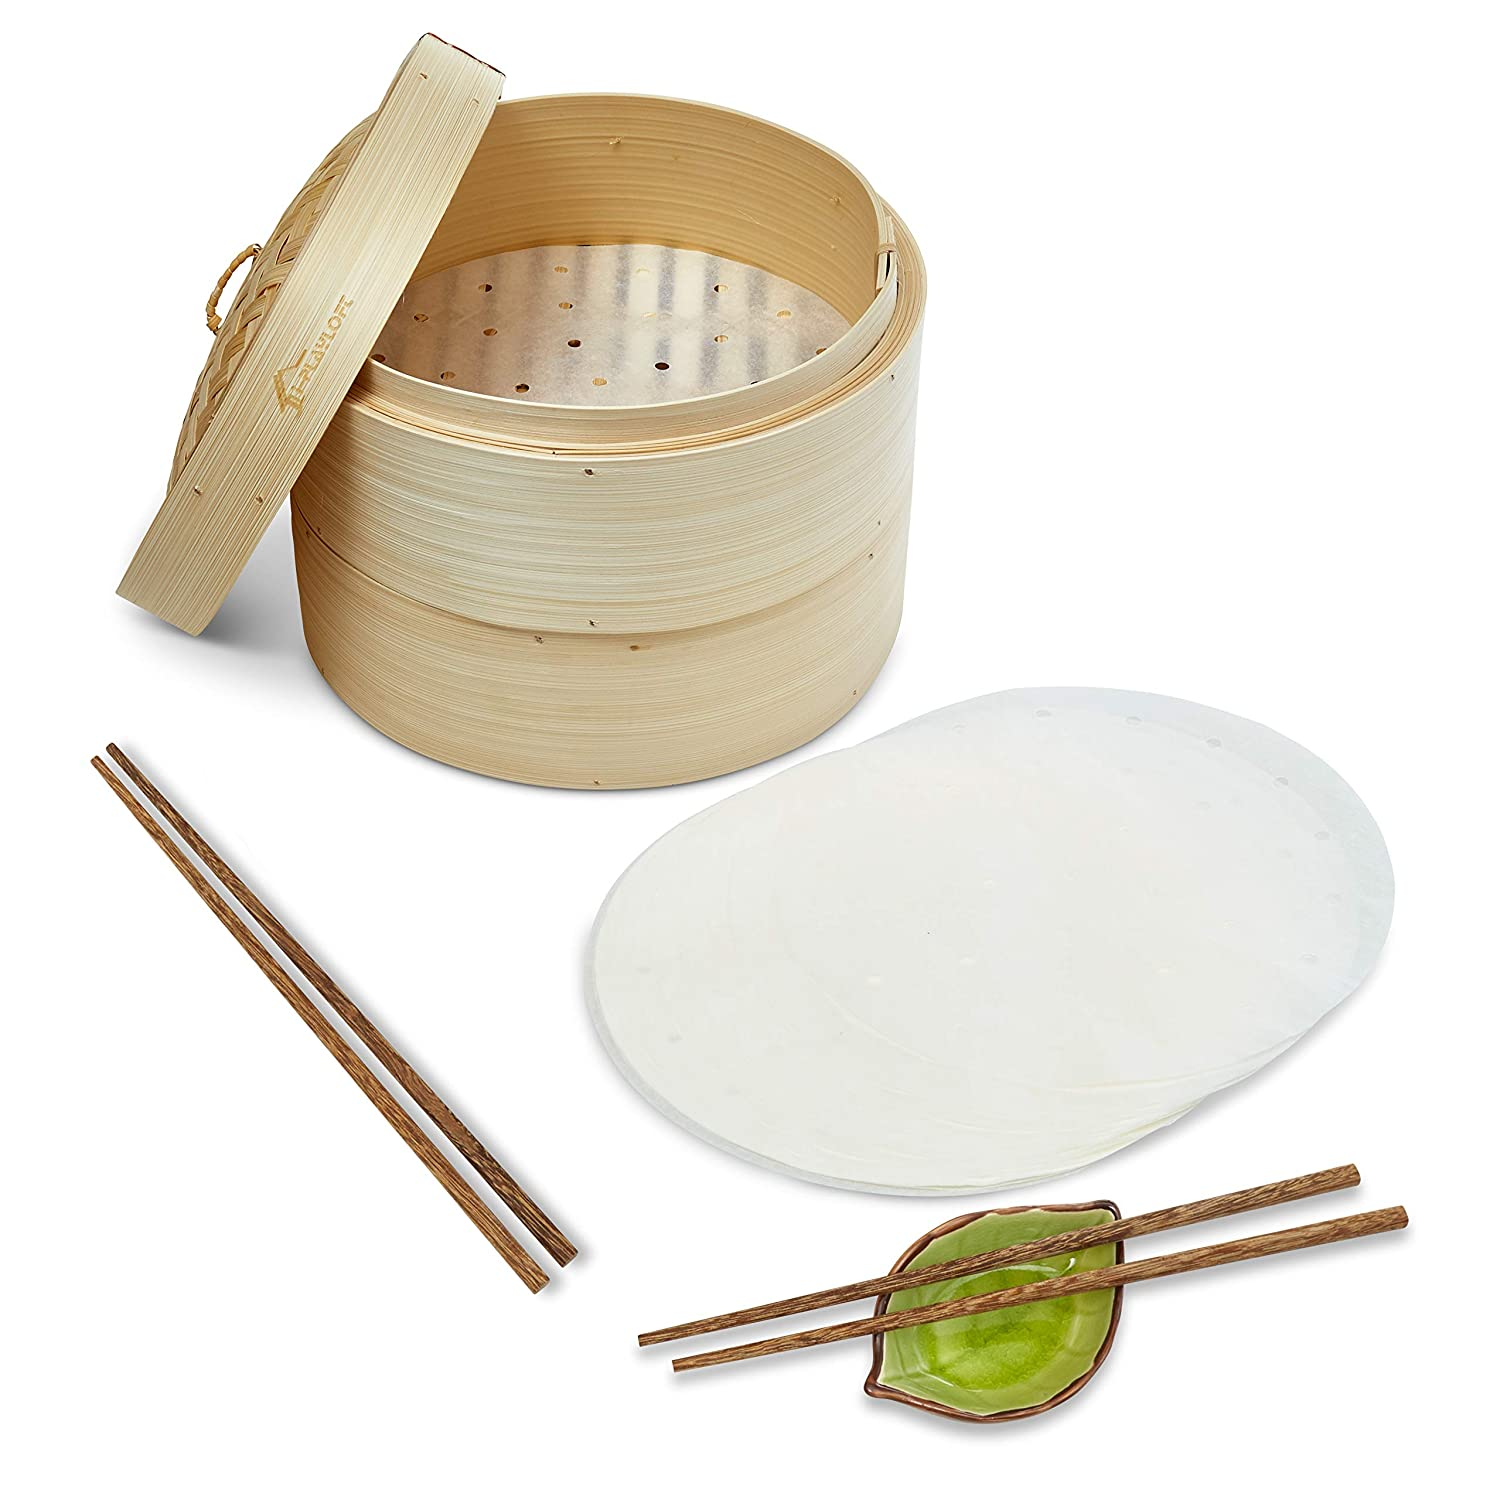 Premium Handmade Two Tier Bamboo Steamer Basket - EXTRA DEPTH - 10 Inch - Dim Sum Dumpling & Bao Bun Chinese Food Steamers - Asian Cooking Tools Set With Chopsticks & Sauce Plate - Steam Baskets For Rice, Vegetables & Fish